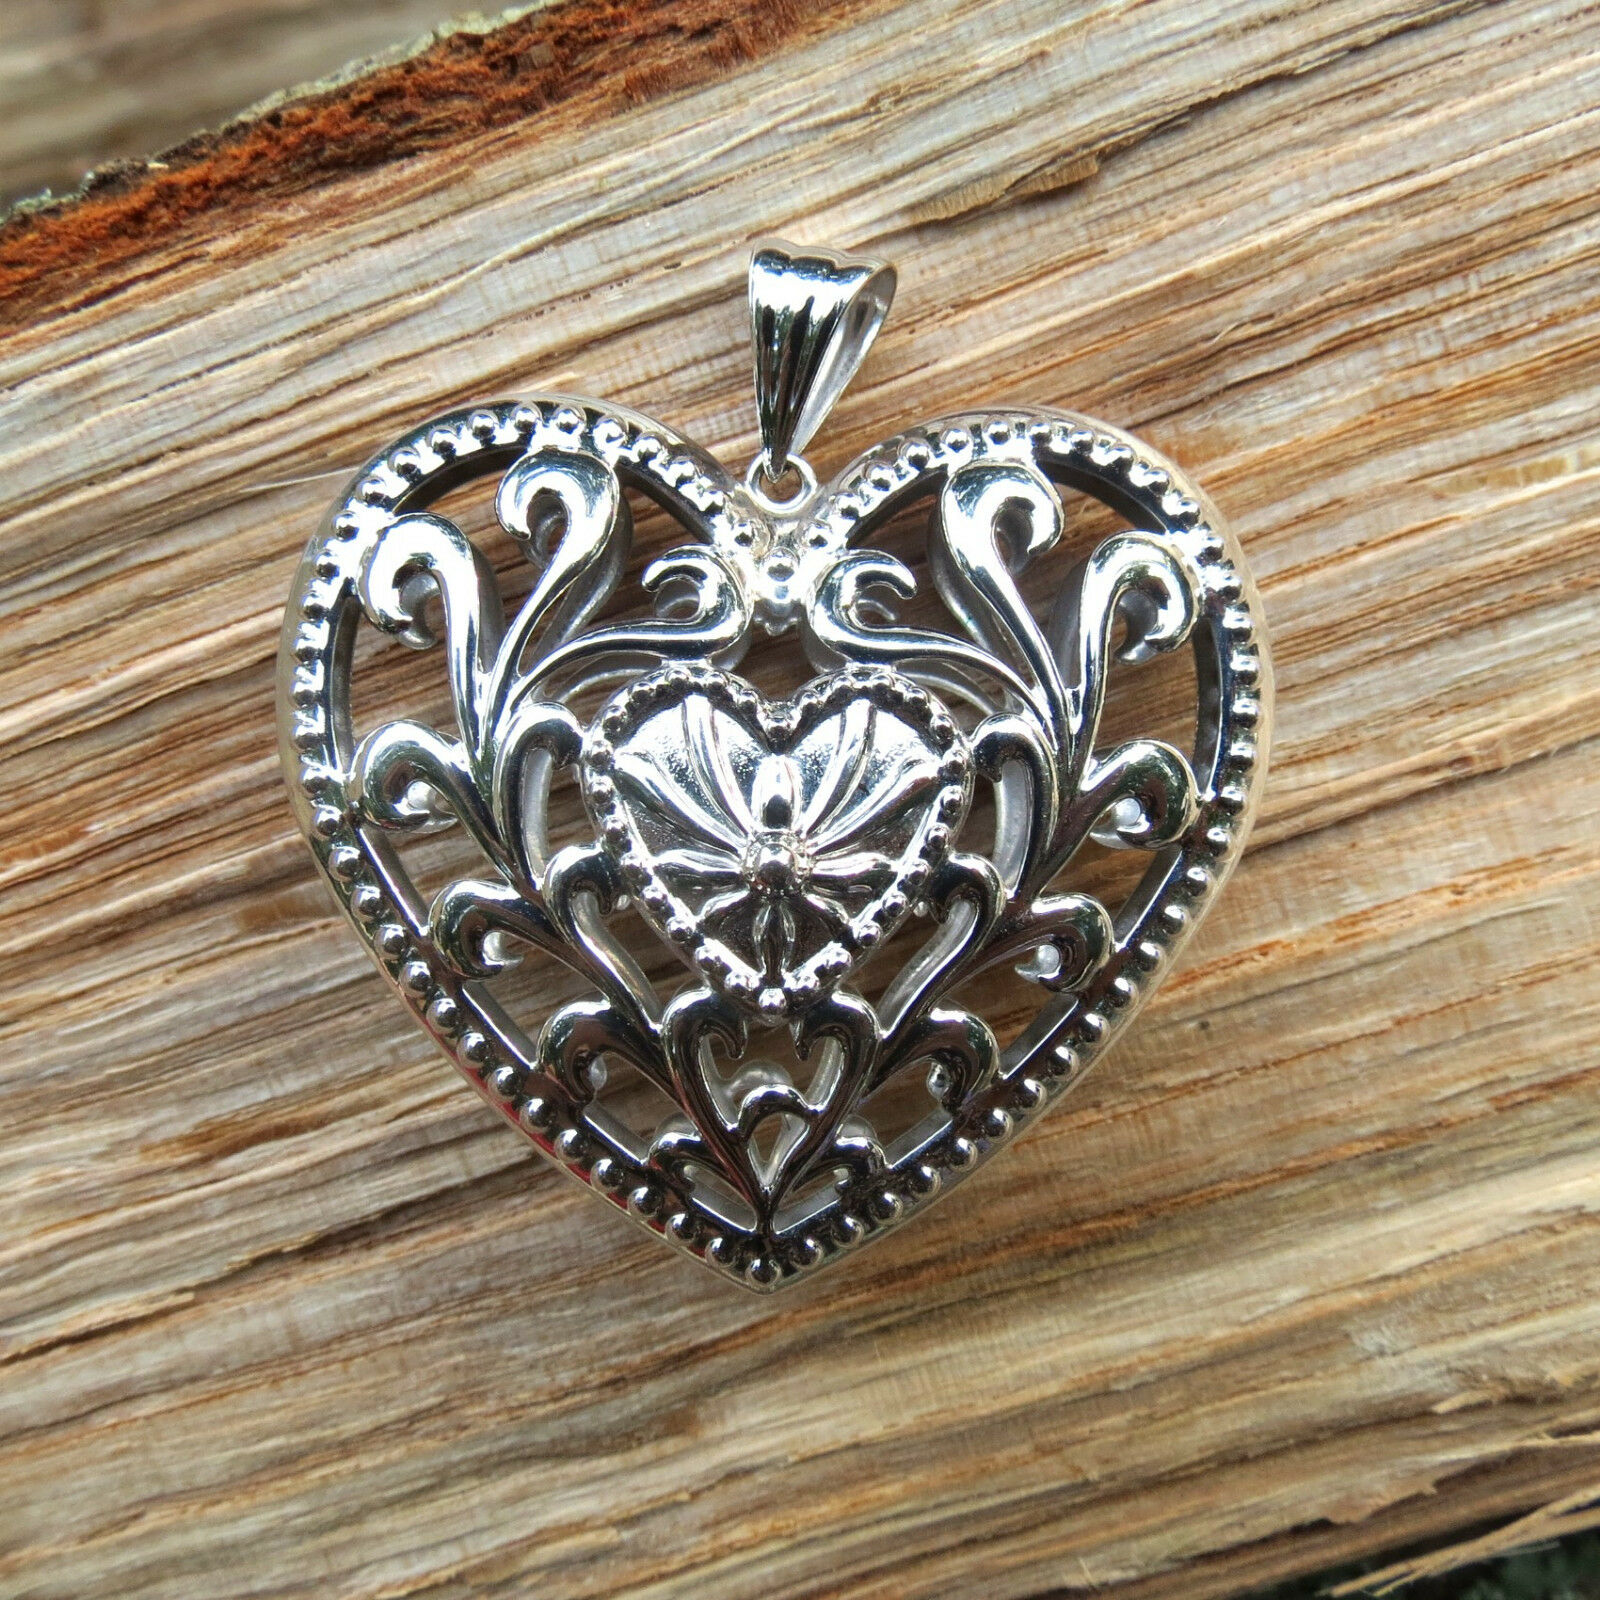 New BIG & Beautiful 14K White gold Fancy Puffed Filigree Heart Pendant